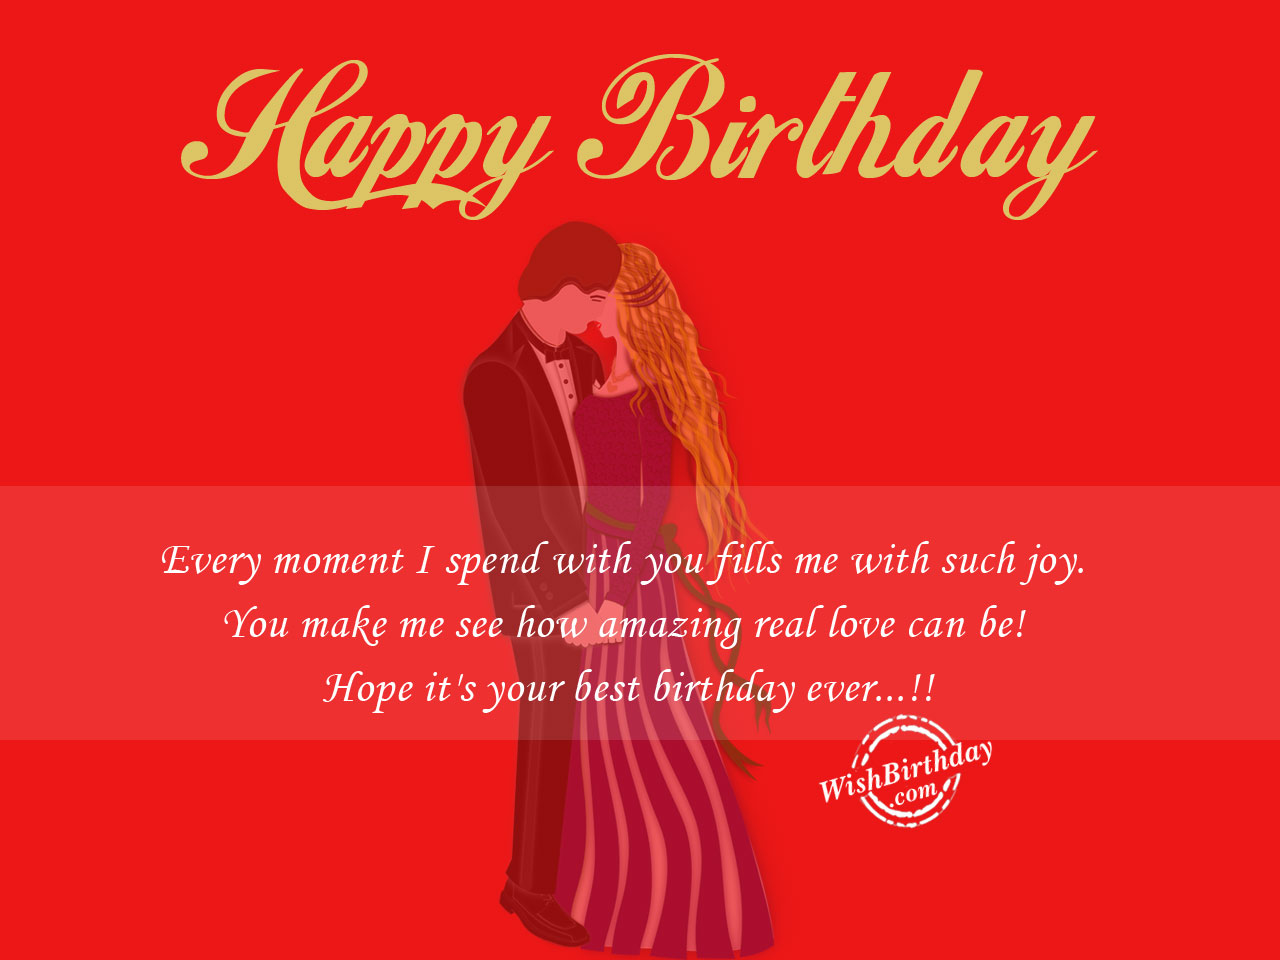 Free Download With Greetings Wishes Cards Happy Birthday For Boyfriend